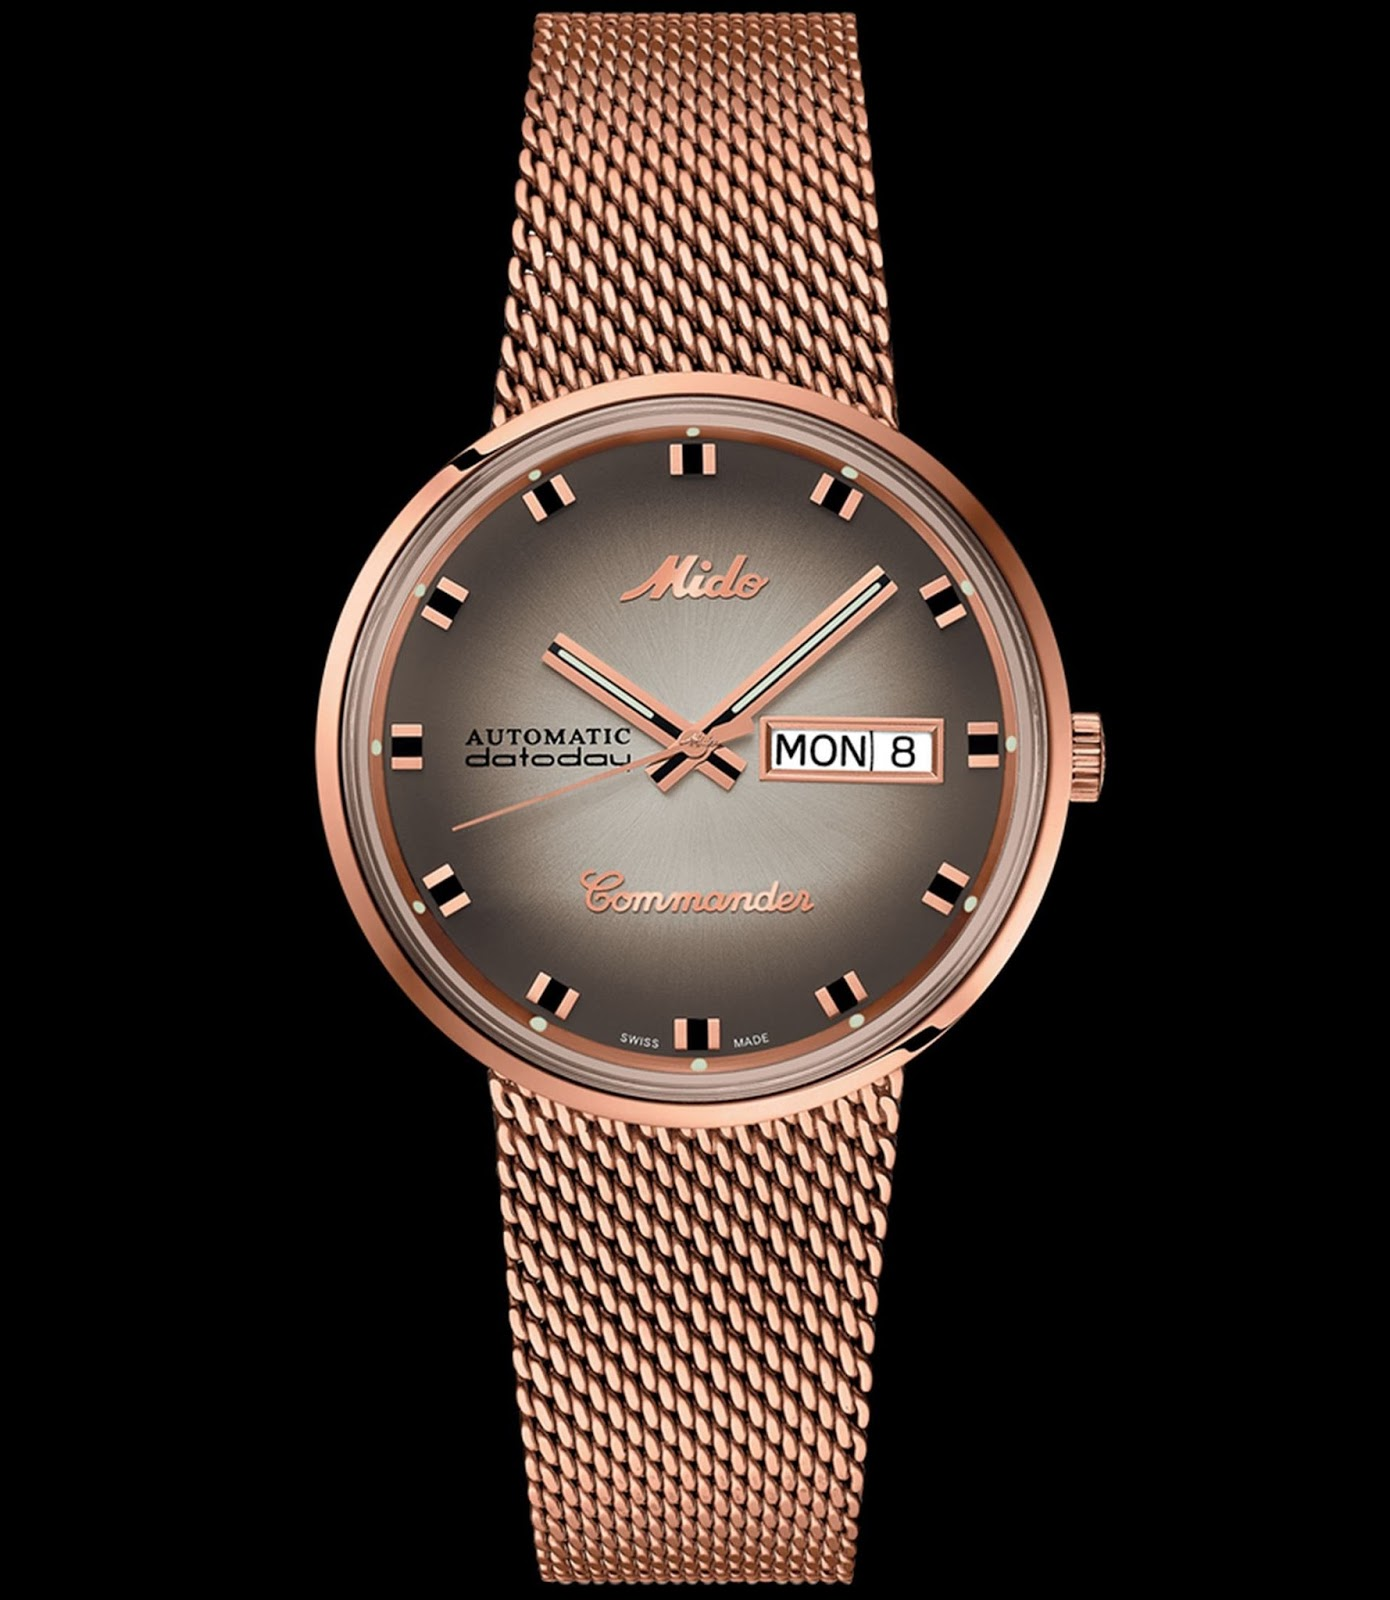 Mido Commander Shade Special Edition In Rose Gold Pvd Case M8429 3 Complete Shades Of Collaboration Limited This Is Available A Personalised Presentation And Due To Be Launched April 2018